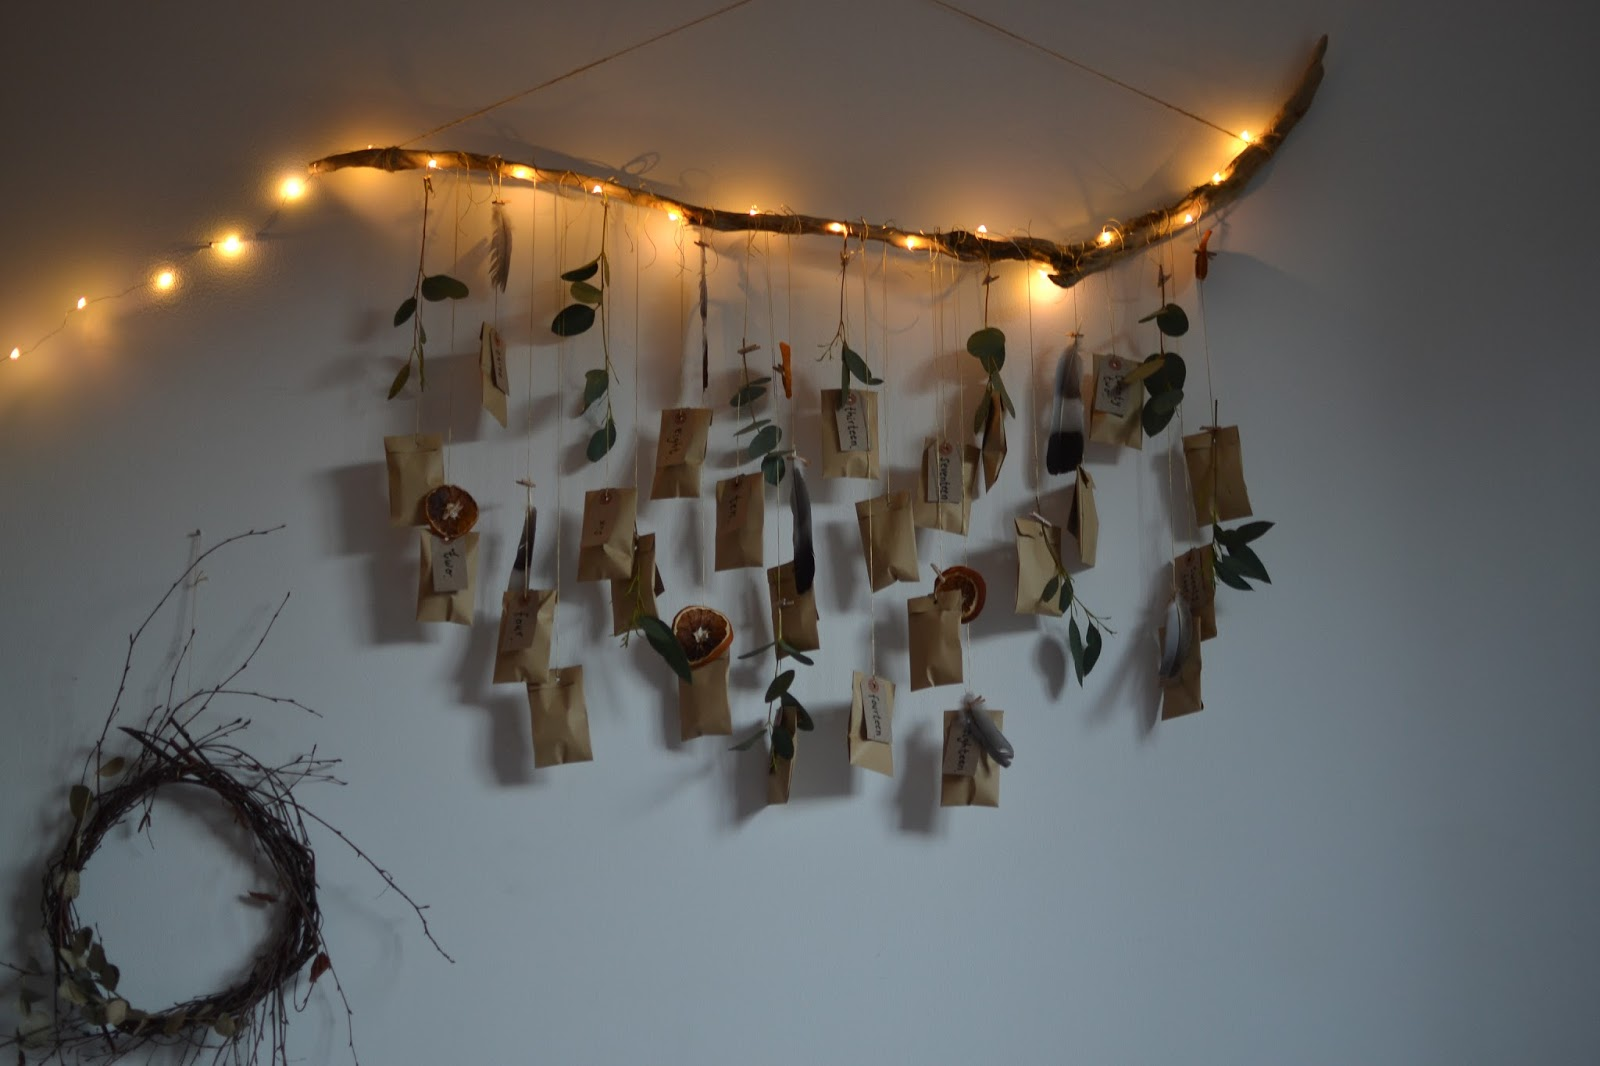 nature inspired lighting. Christmas 2016 - A DIY Nature Inspired Advent Calendar Lighting